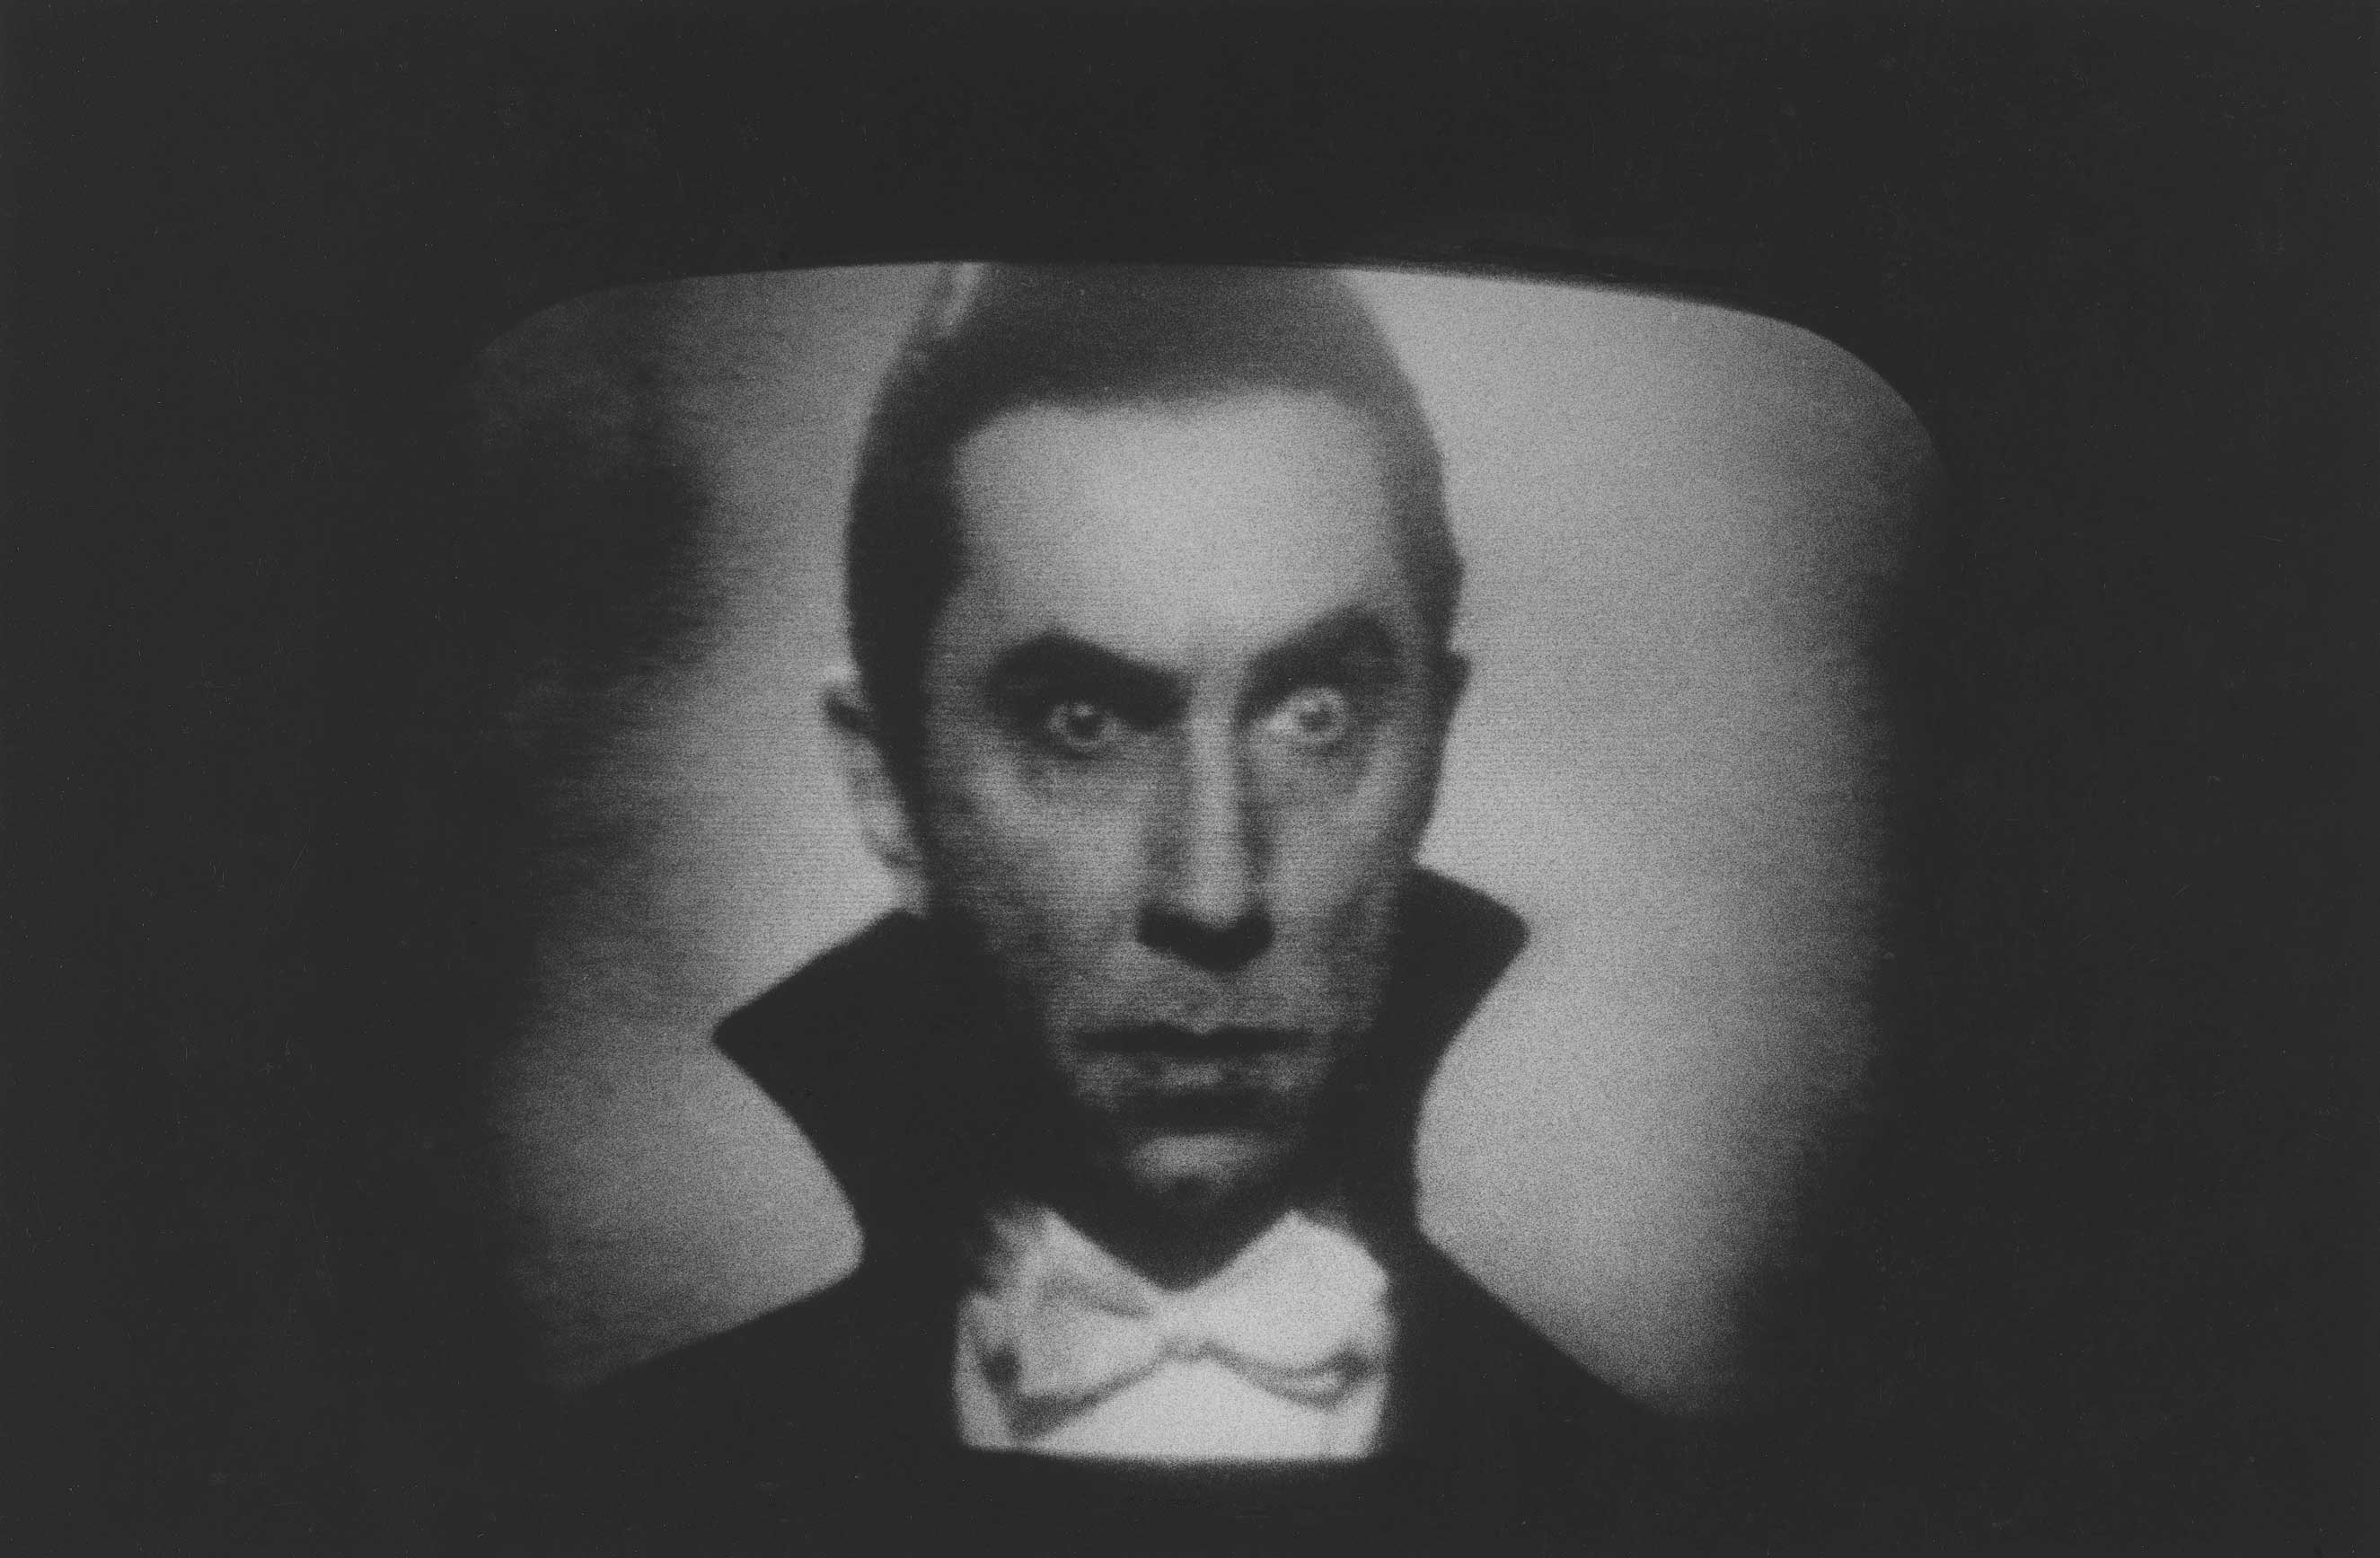 Bela Lugosi as Dracula on television, 1958                               John Gossage: Early pictures when Diane was still looking. Looking at a world she was about to enter. She told me she showed her early photographs to John Szarkowski who said that they where brilliant  but not quite pictures.